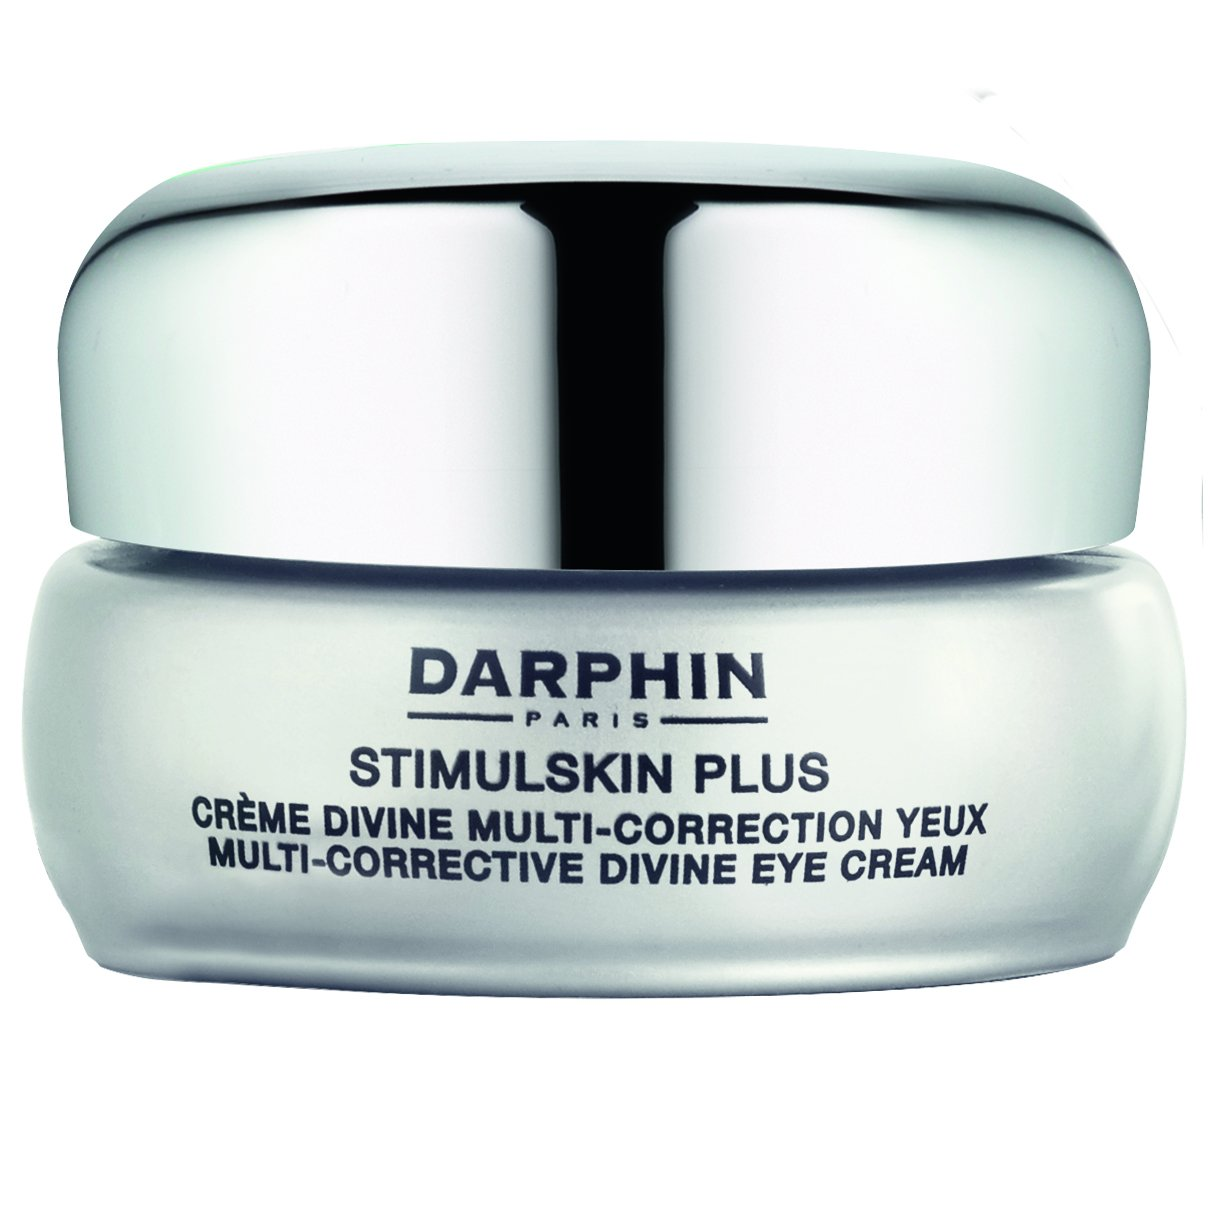 Stimulskin Plus Multi-Corrective Divine Eye Cream - 15ml/0.5oz Darphin